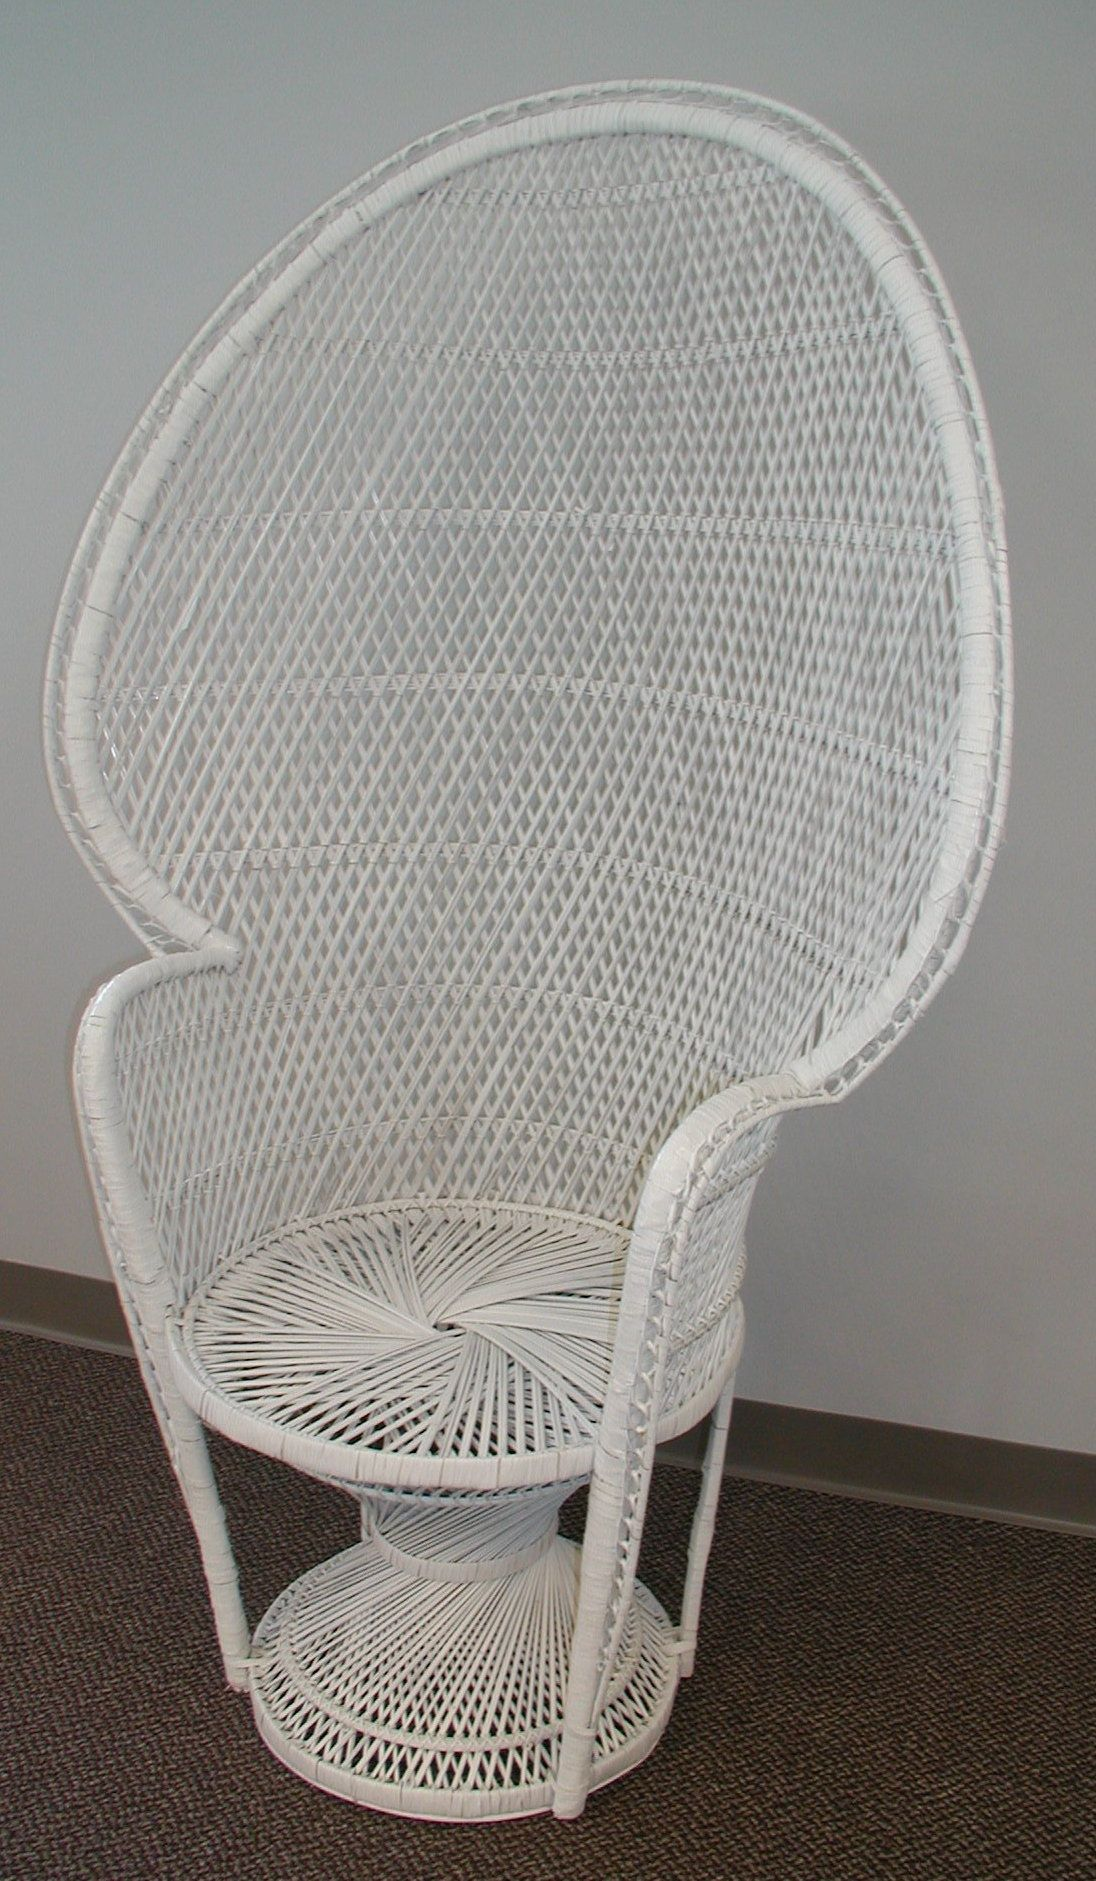 Merveilleux Shown Is Our Wicker High Back Chair. It Would Be A Perfect Addition To Your  Baby Shower Or Party!